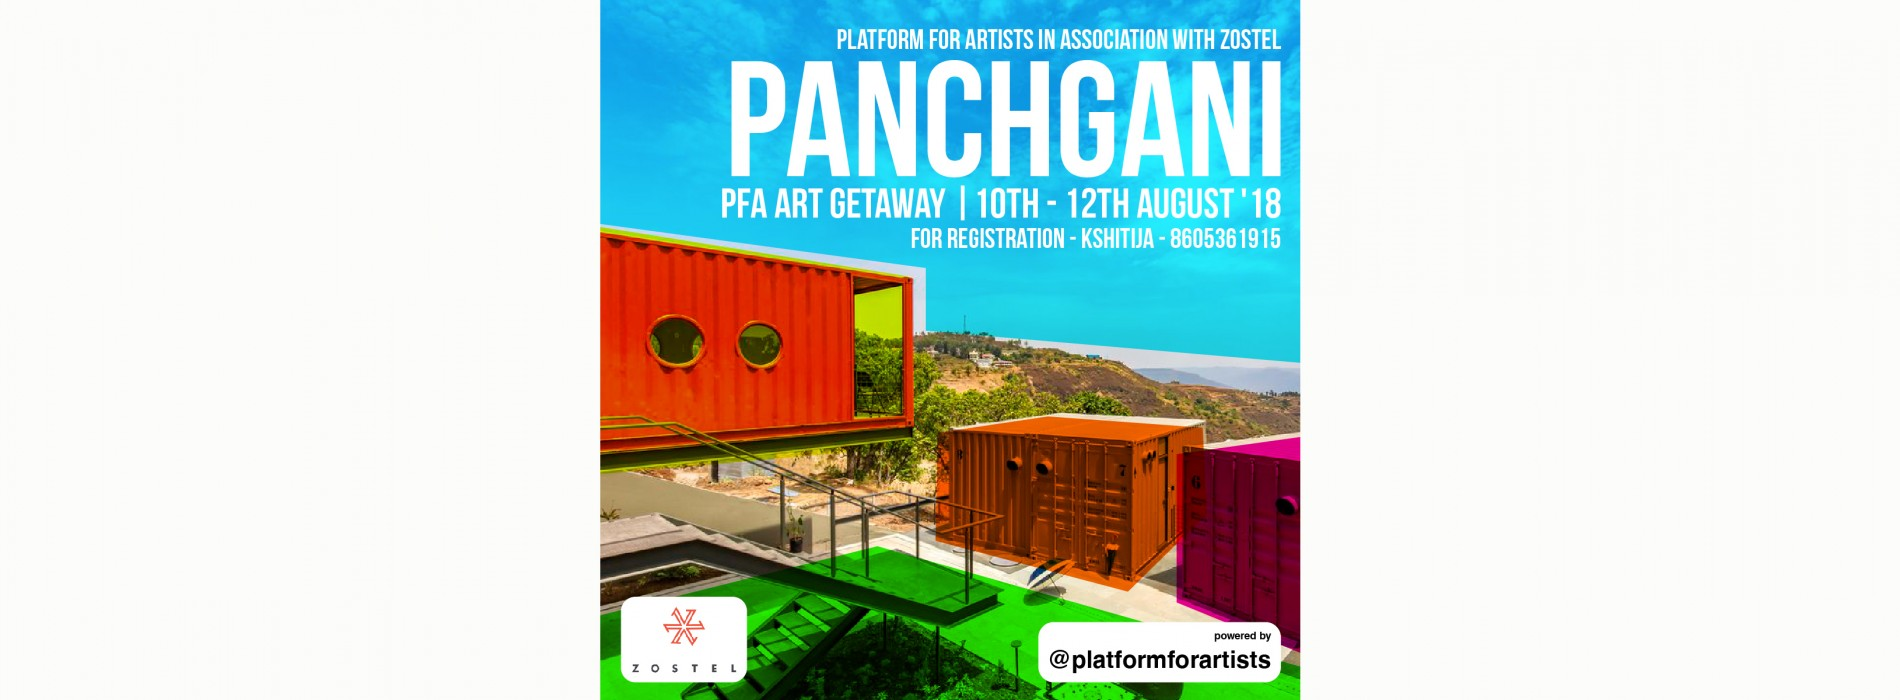 Platform For Artists partners with Zostel for 10th Art Getaway in Panchgani